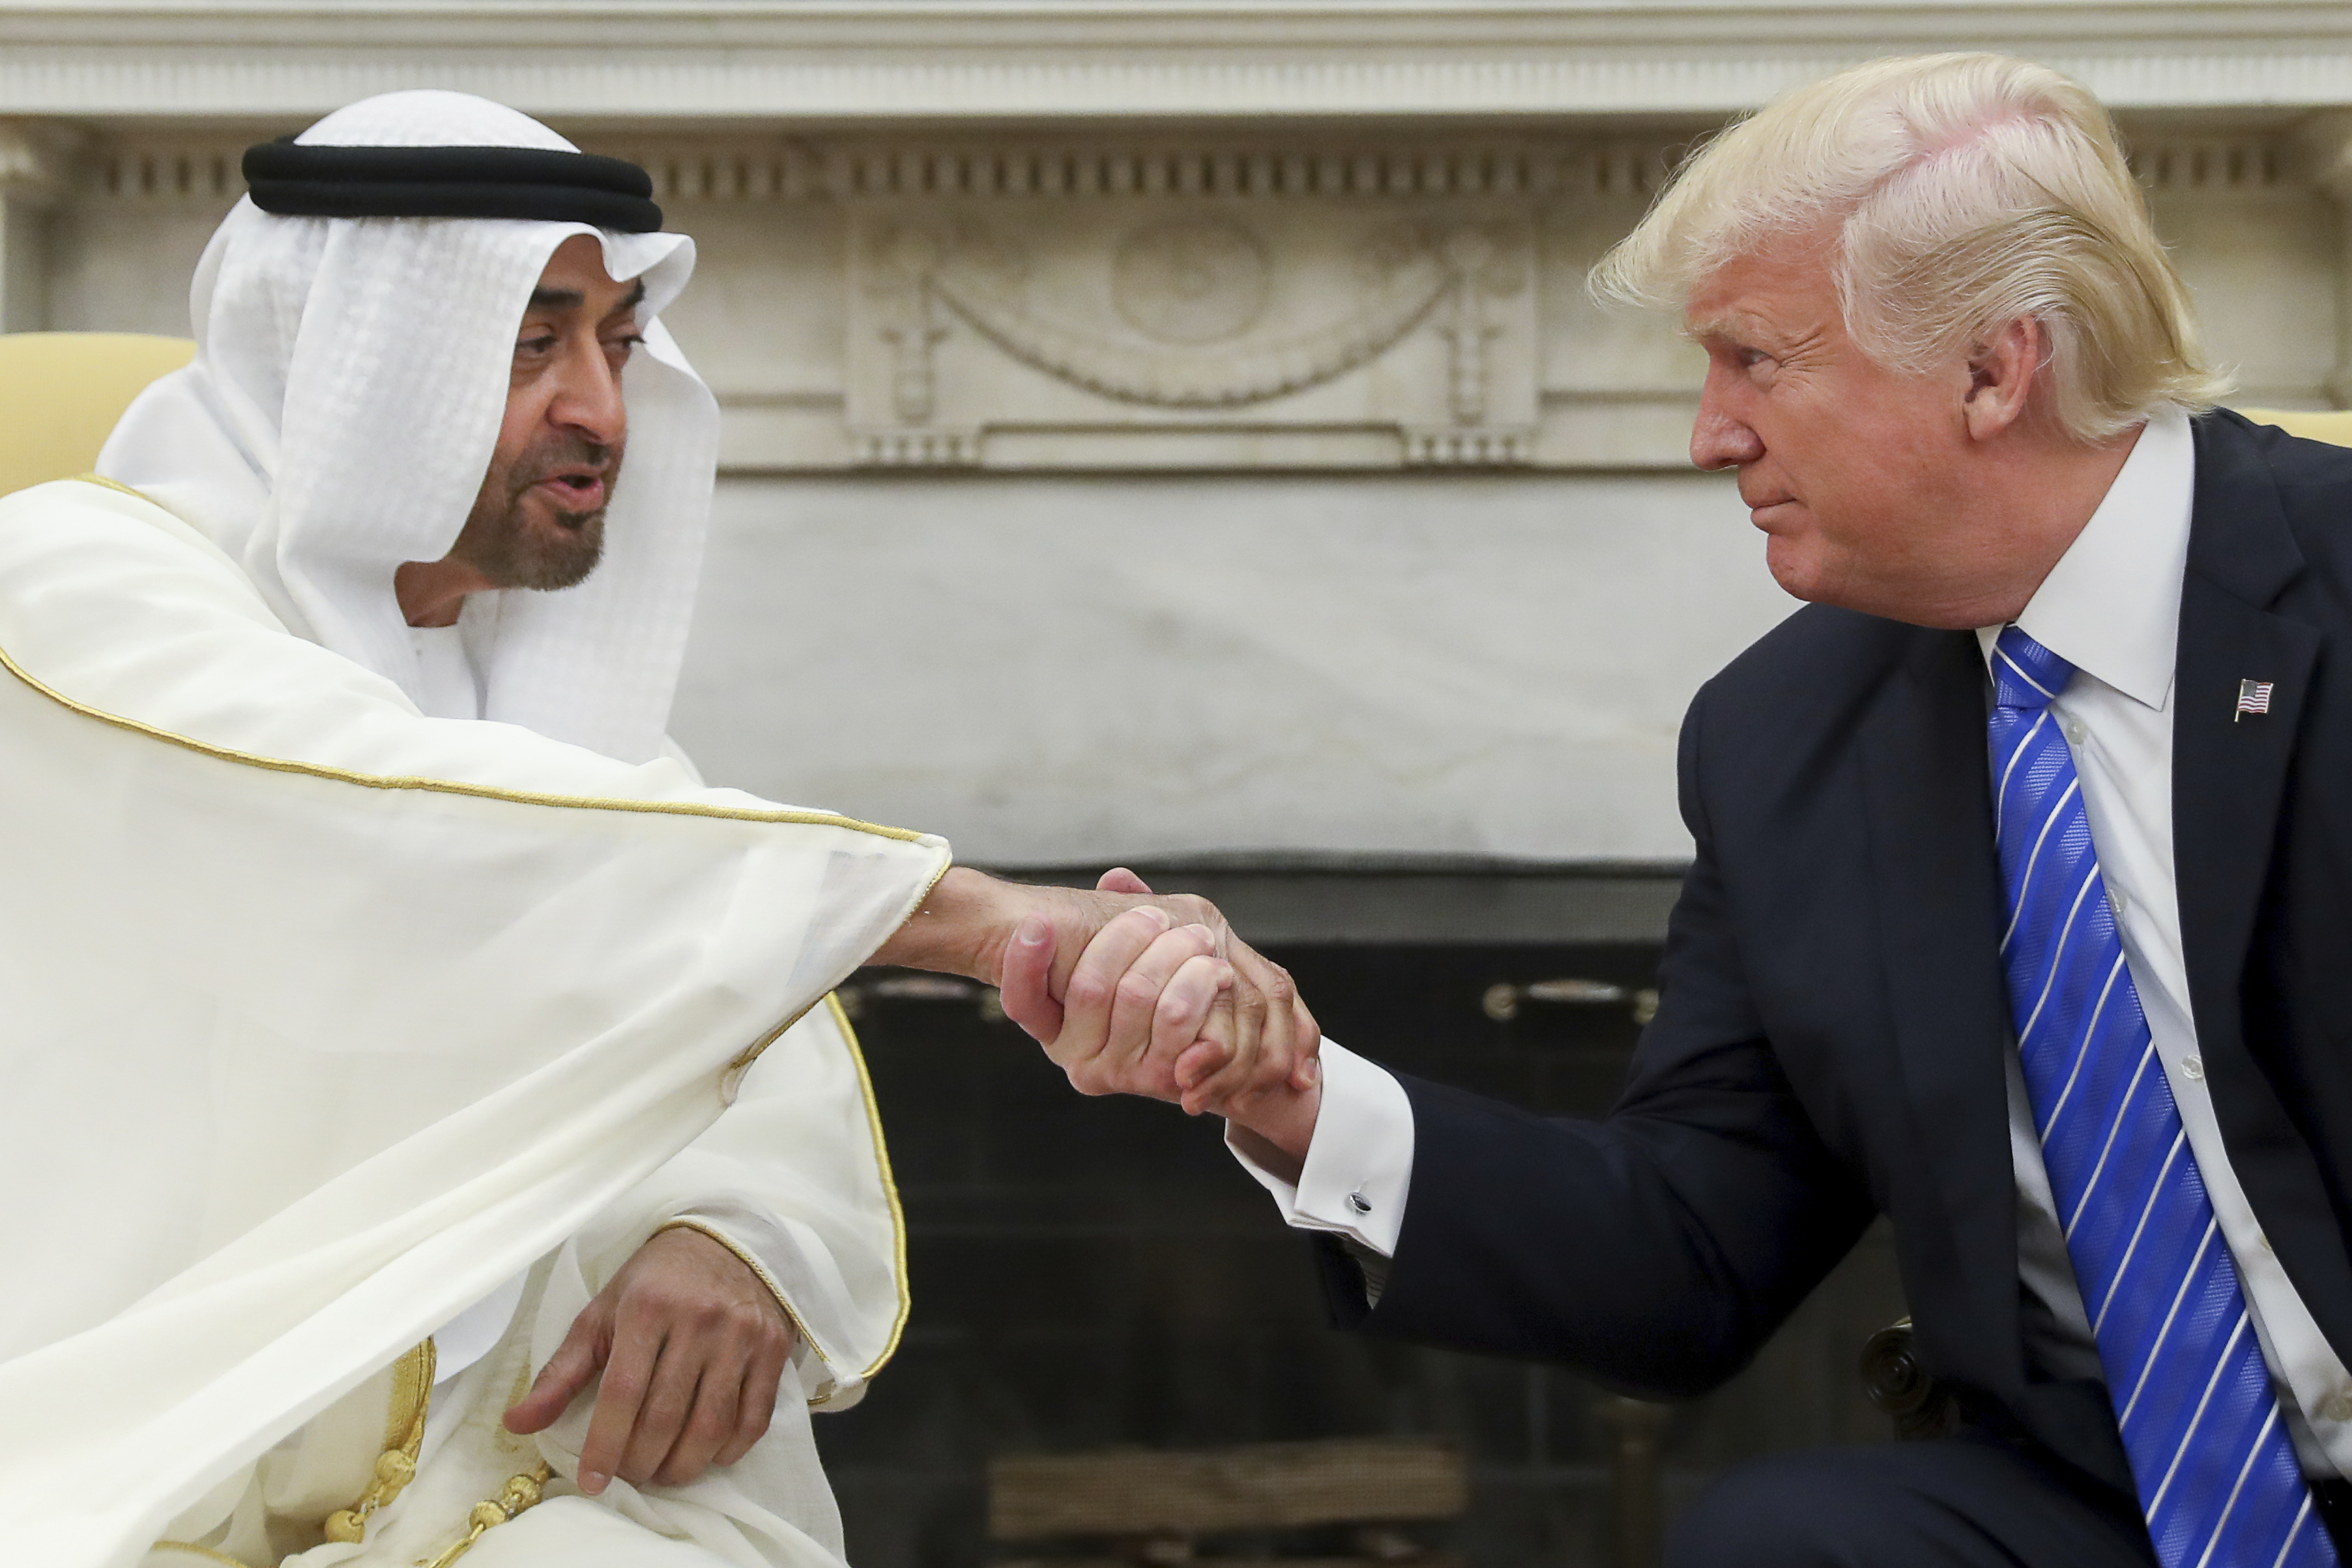 FILE - In this May 15, 2017, file photo, President Donald Trump shakes hands with Abu Dhabi's crown prince, Sheikh Mohammed bin Zayed Al Nahyan, in the White House in Washington. Emails obtained by The Associated Press between business partners Elliott Broidy and George Nader reveal that the pair was working with bin Zayed in a lobbying effort to alter U.S. policy in the Middle East. (AP Photo/Andrew Harnik, File)